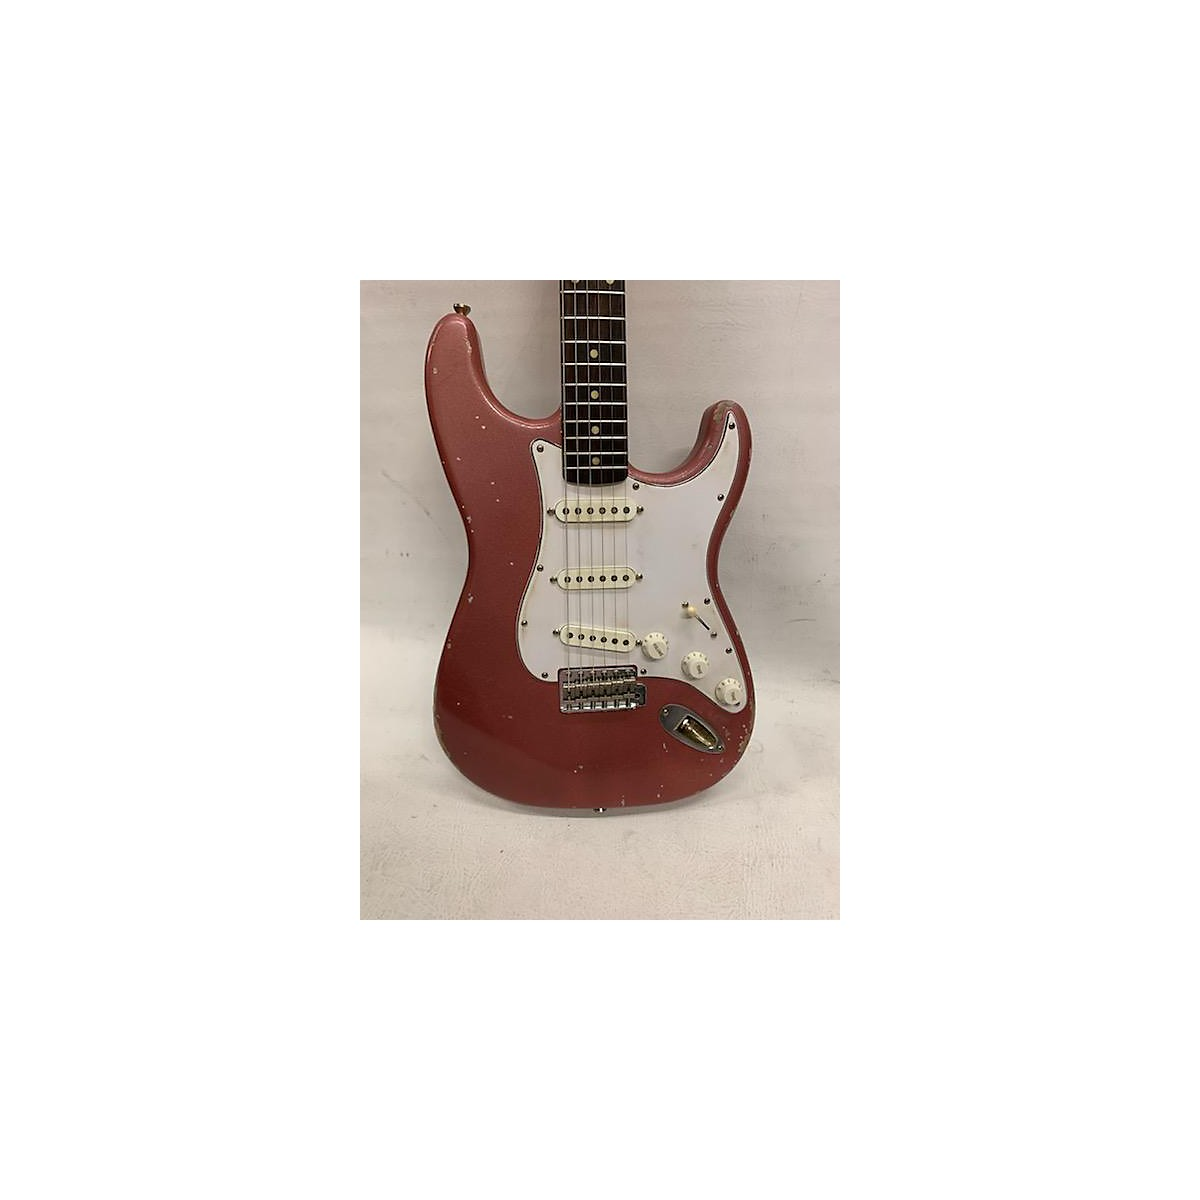 In Store Used Used 2019 Rittenhouse Guitars S-Model Burgundy Mist Solid Body Electric Guitar